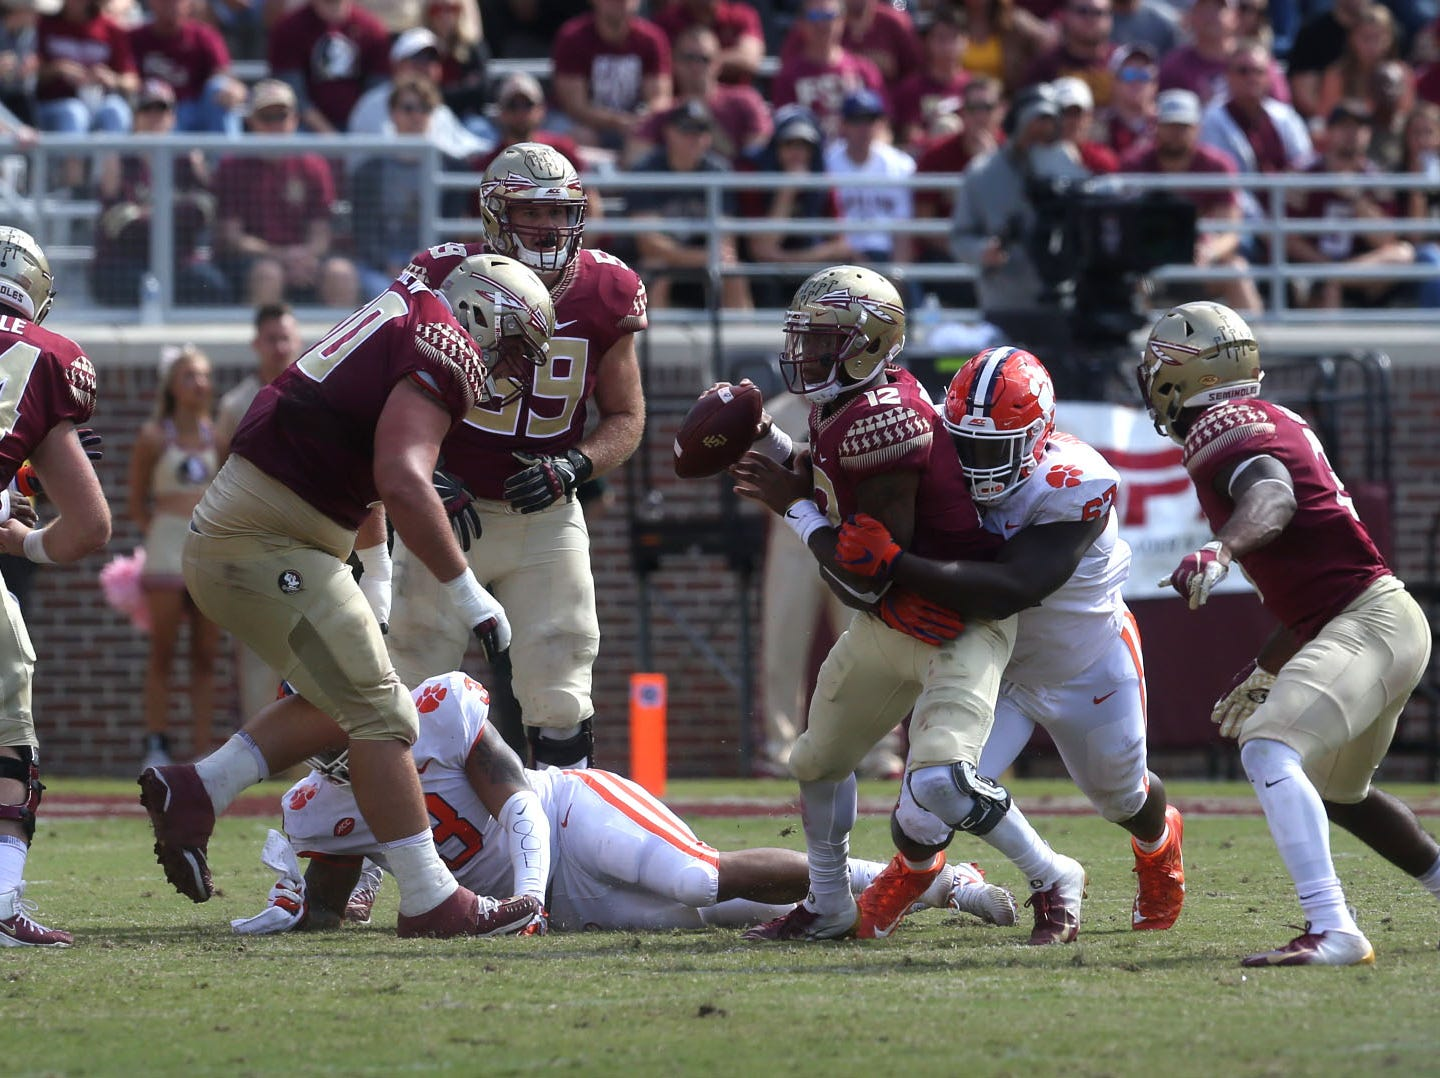 Florida State Seminoles quarterback Deondre Francois (12) gets sacked by Clemson Tigers defensive tackle Albert Huggins (67) as the Florida State Seminoles take on the Clemson Tigers in college football at Doak S. Campbell Stadium on Saturday, Oct. 27, 2018.